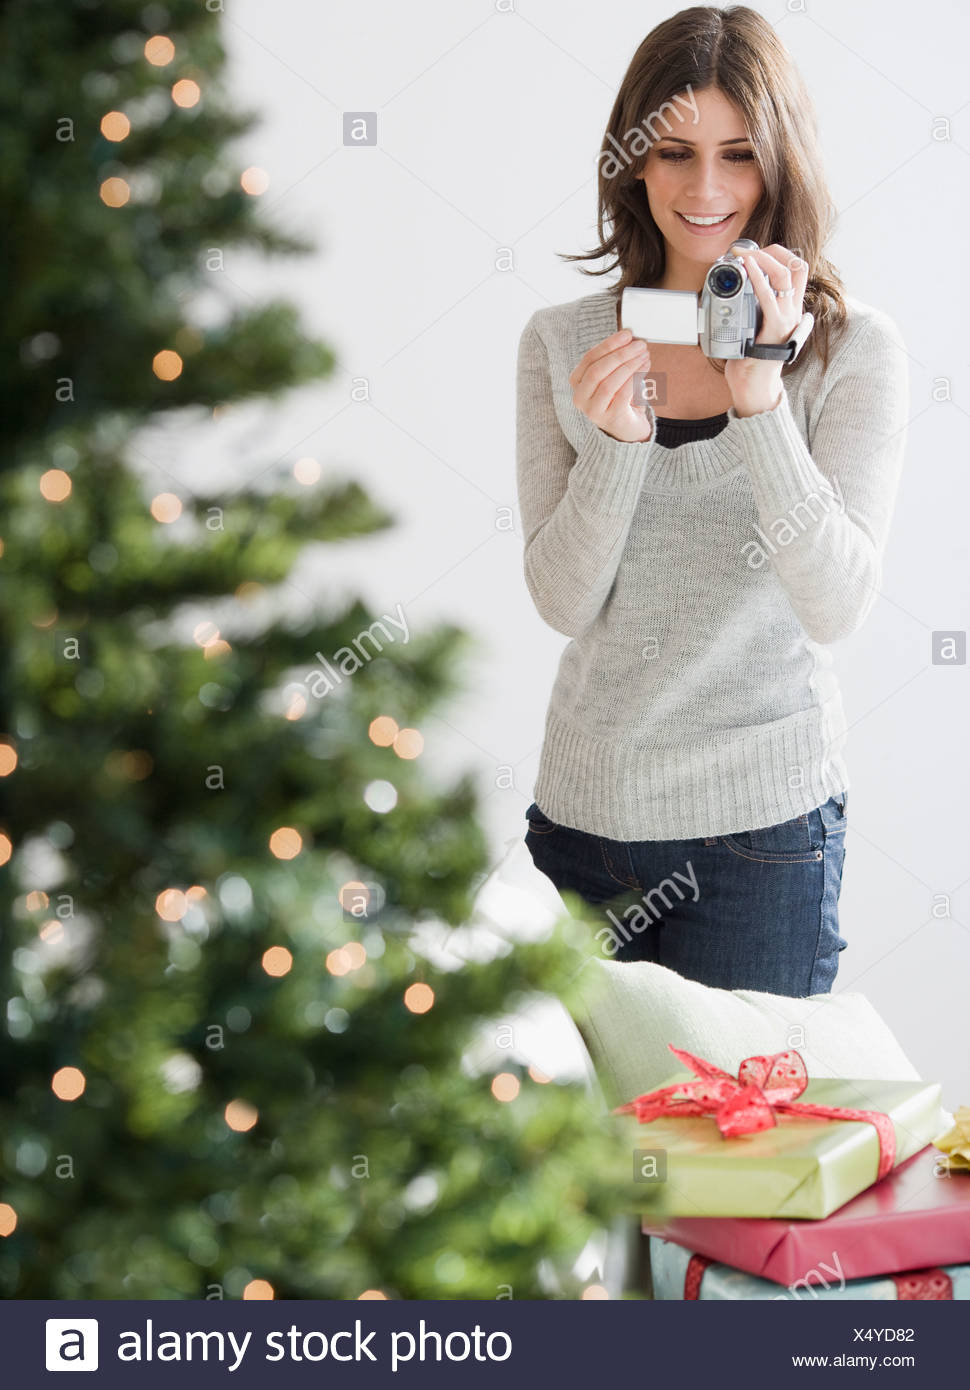 Woman video recording Christmas tree - Stock Image